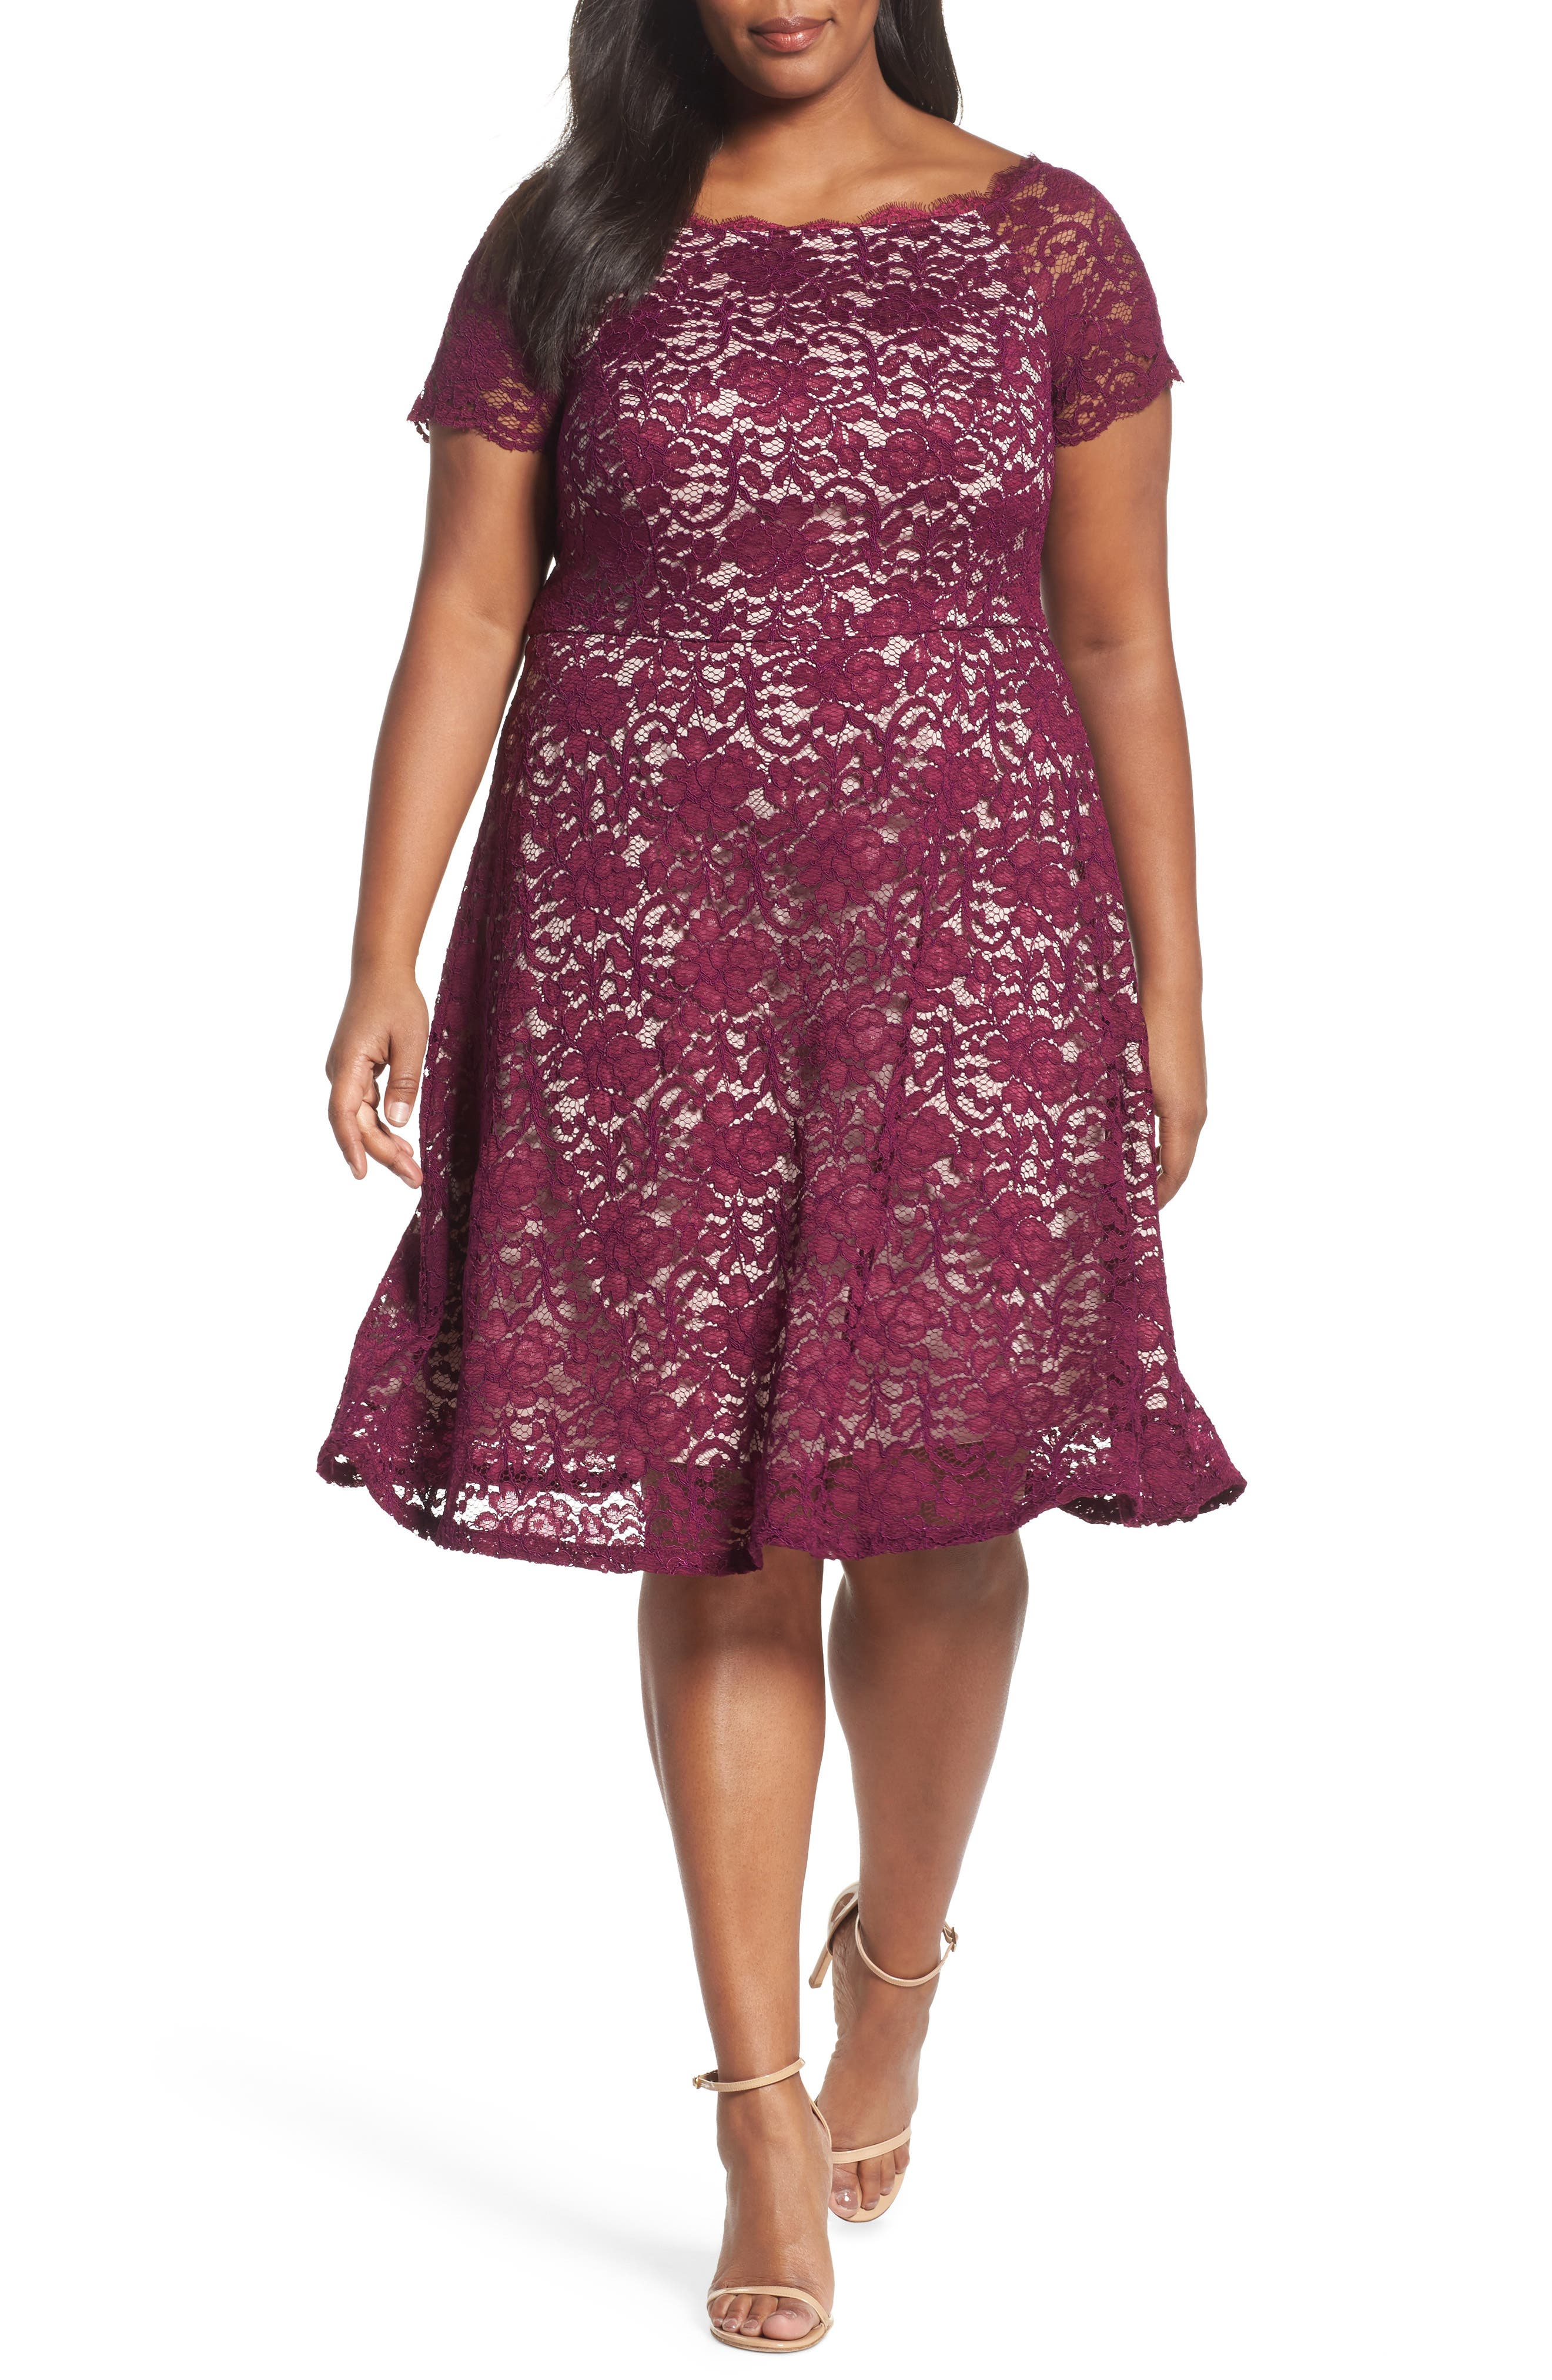 Main Image - Adrianna Papell Fit & Flare Lace Dress (Plus Size)